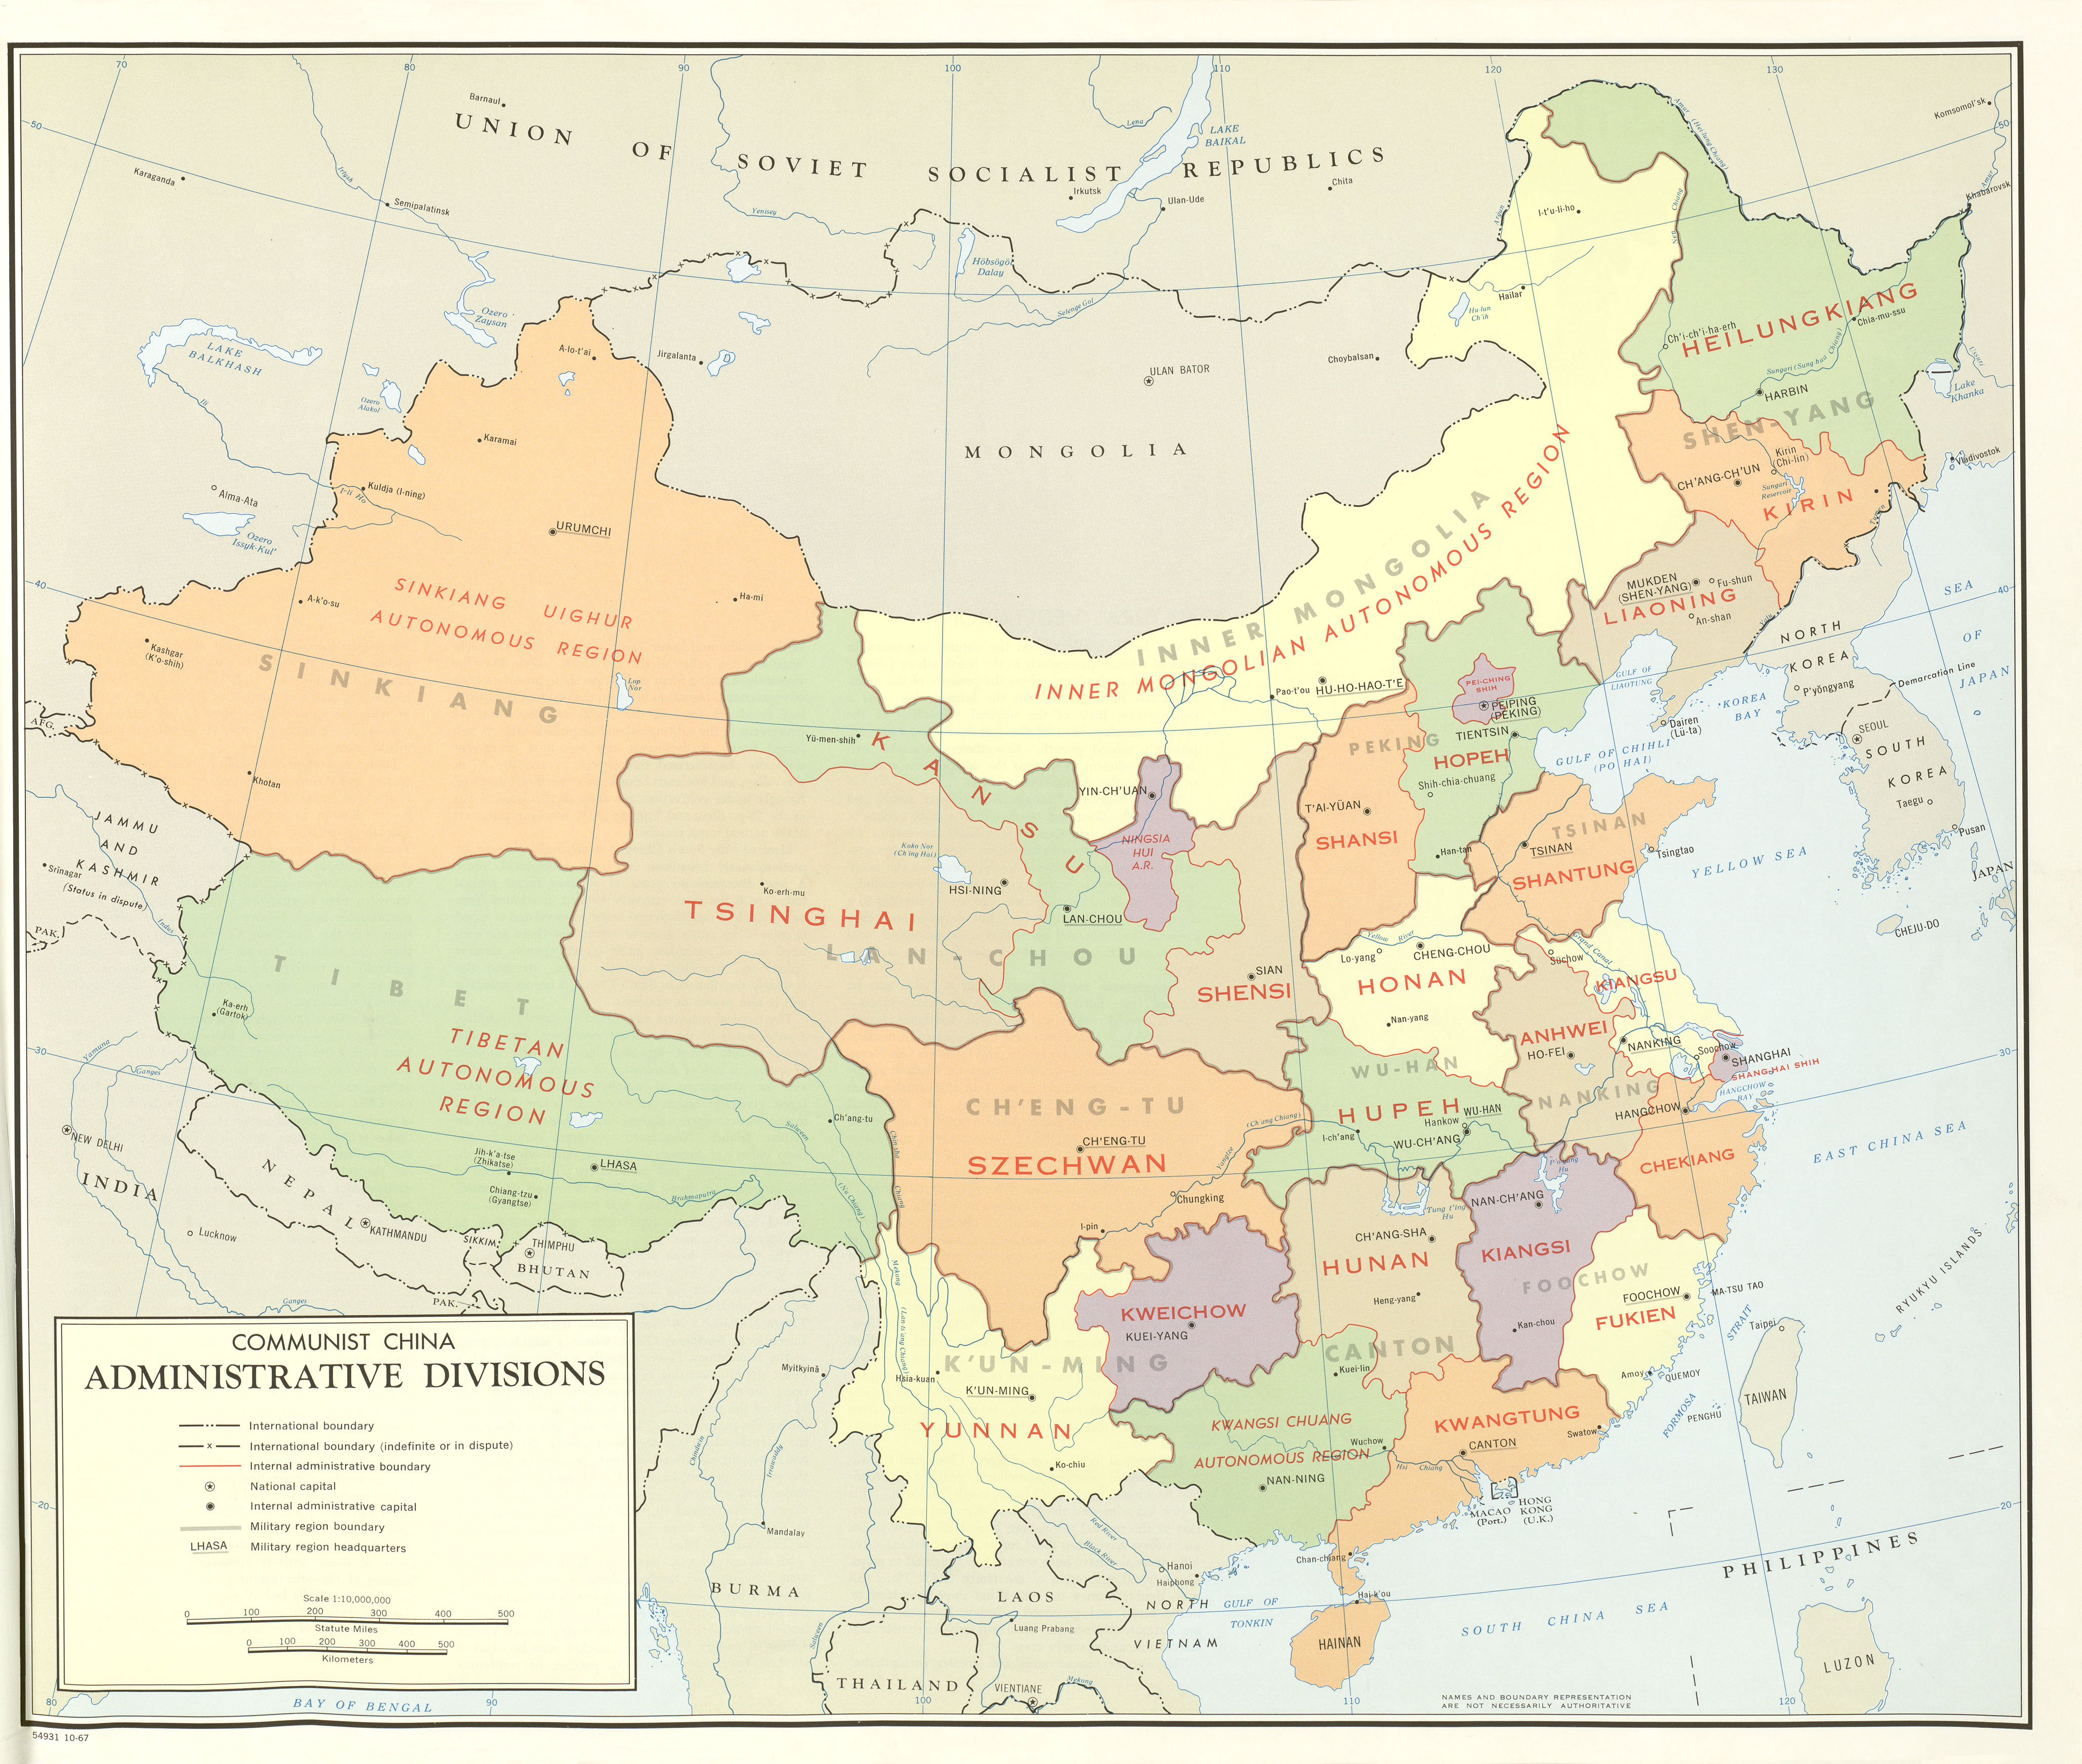 China map folio perry castaeda map collection ut library online communist china administrative divisions map gumiabroncs Image collections